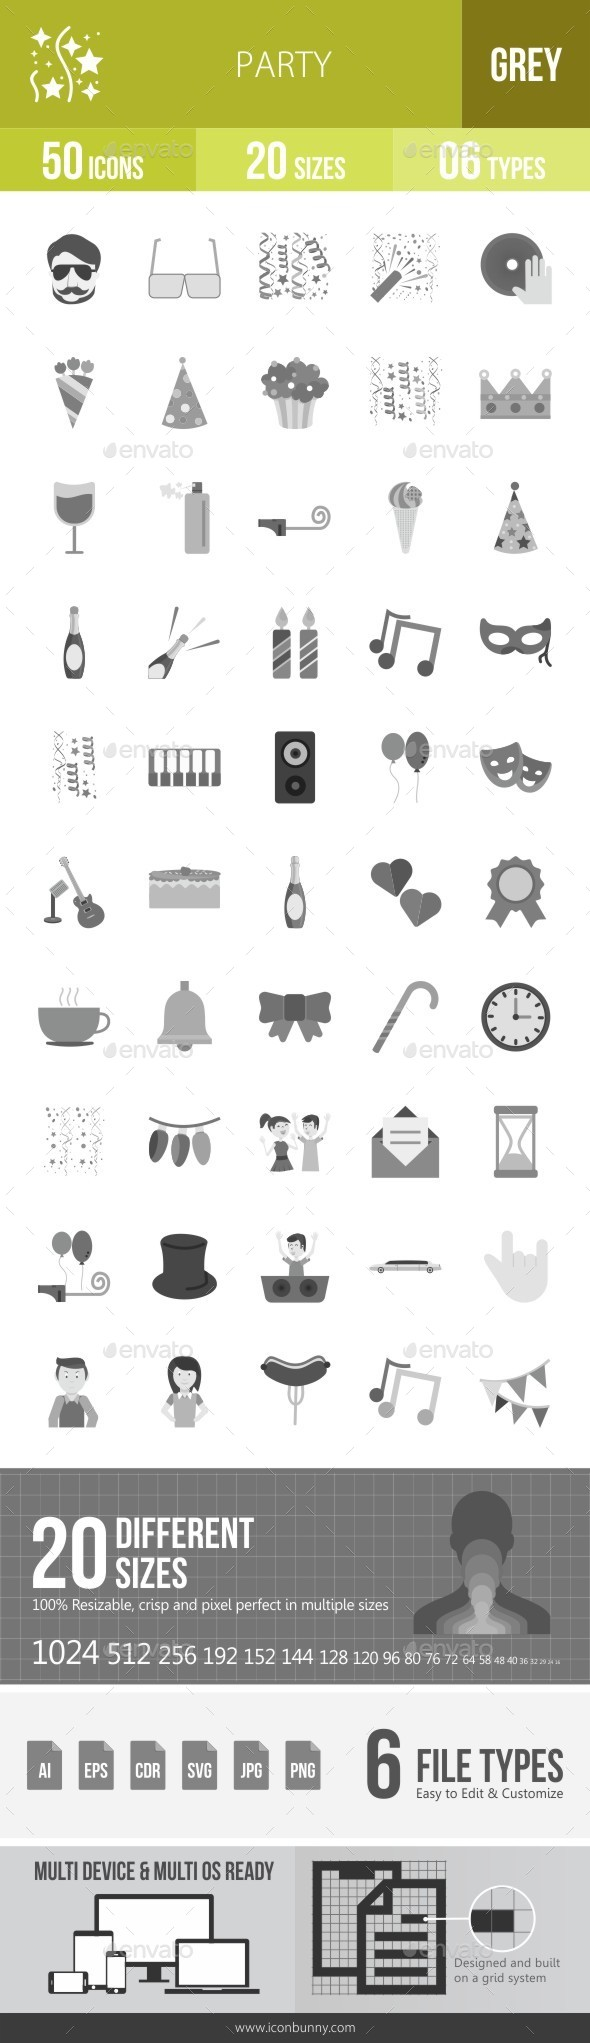 Party Greyscale Icons - Icons